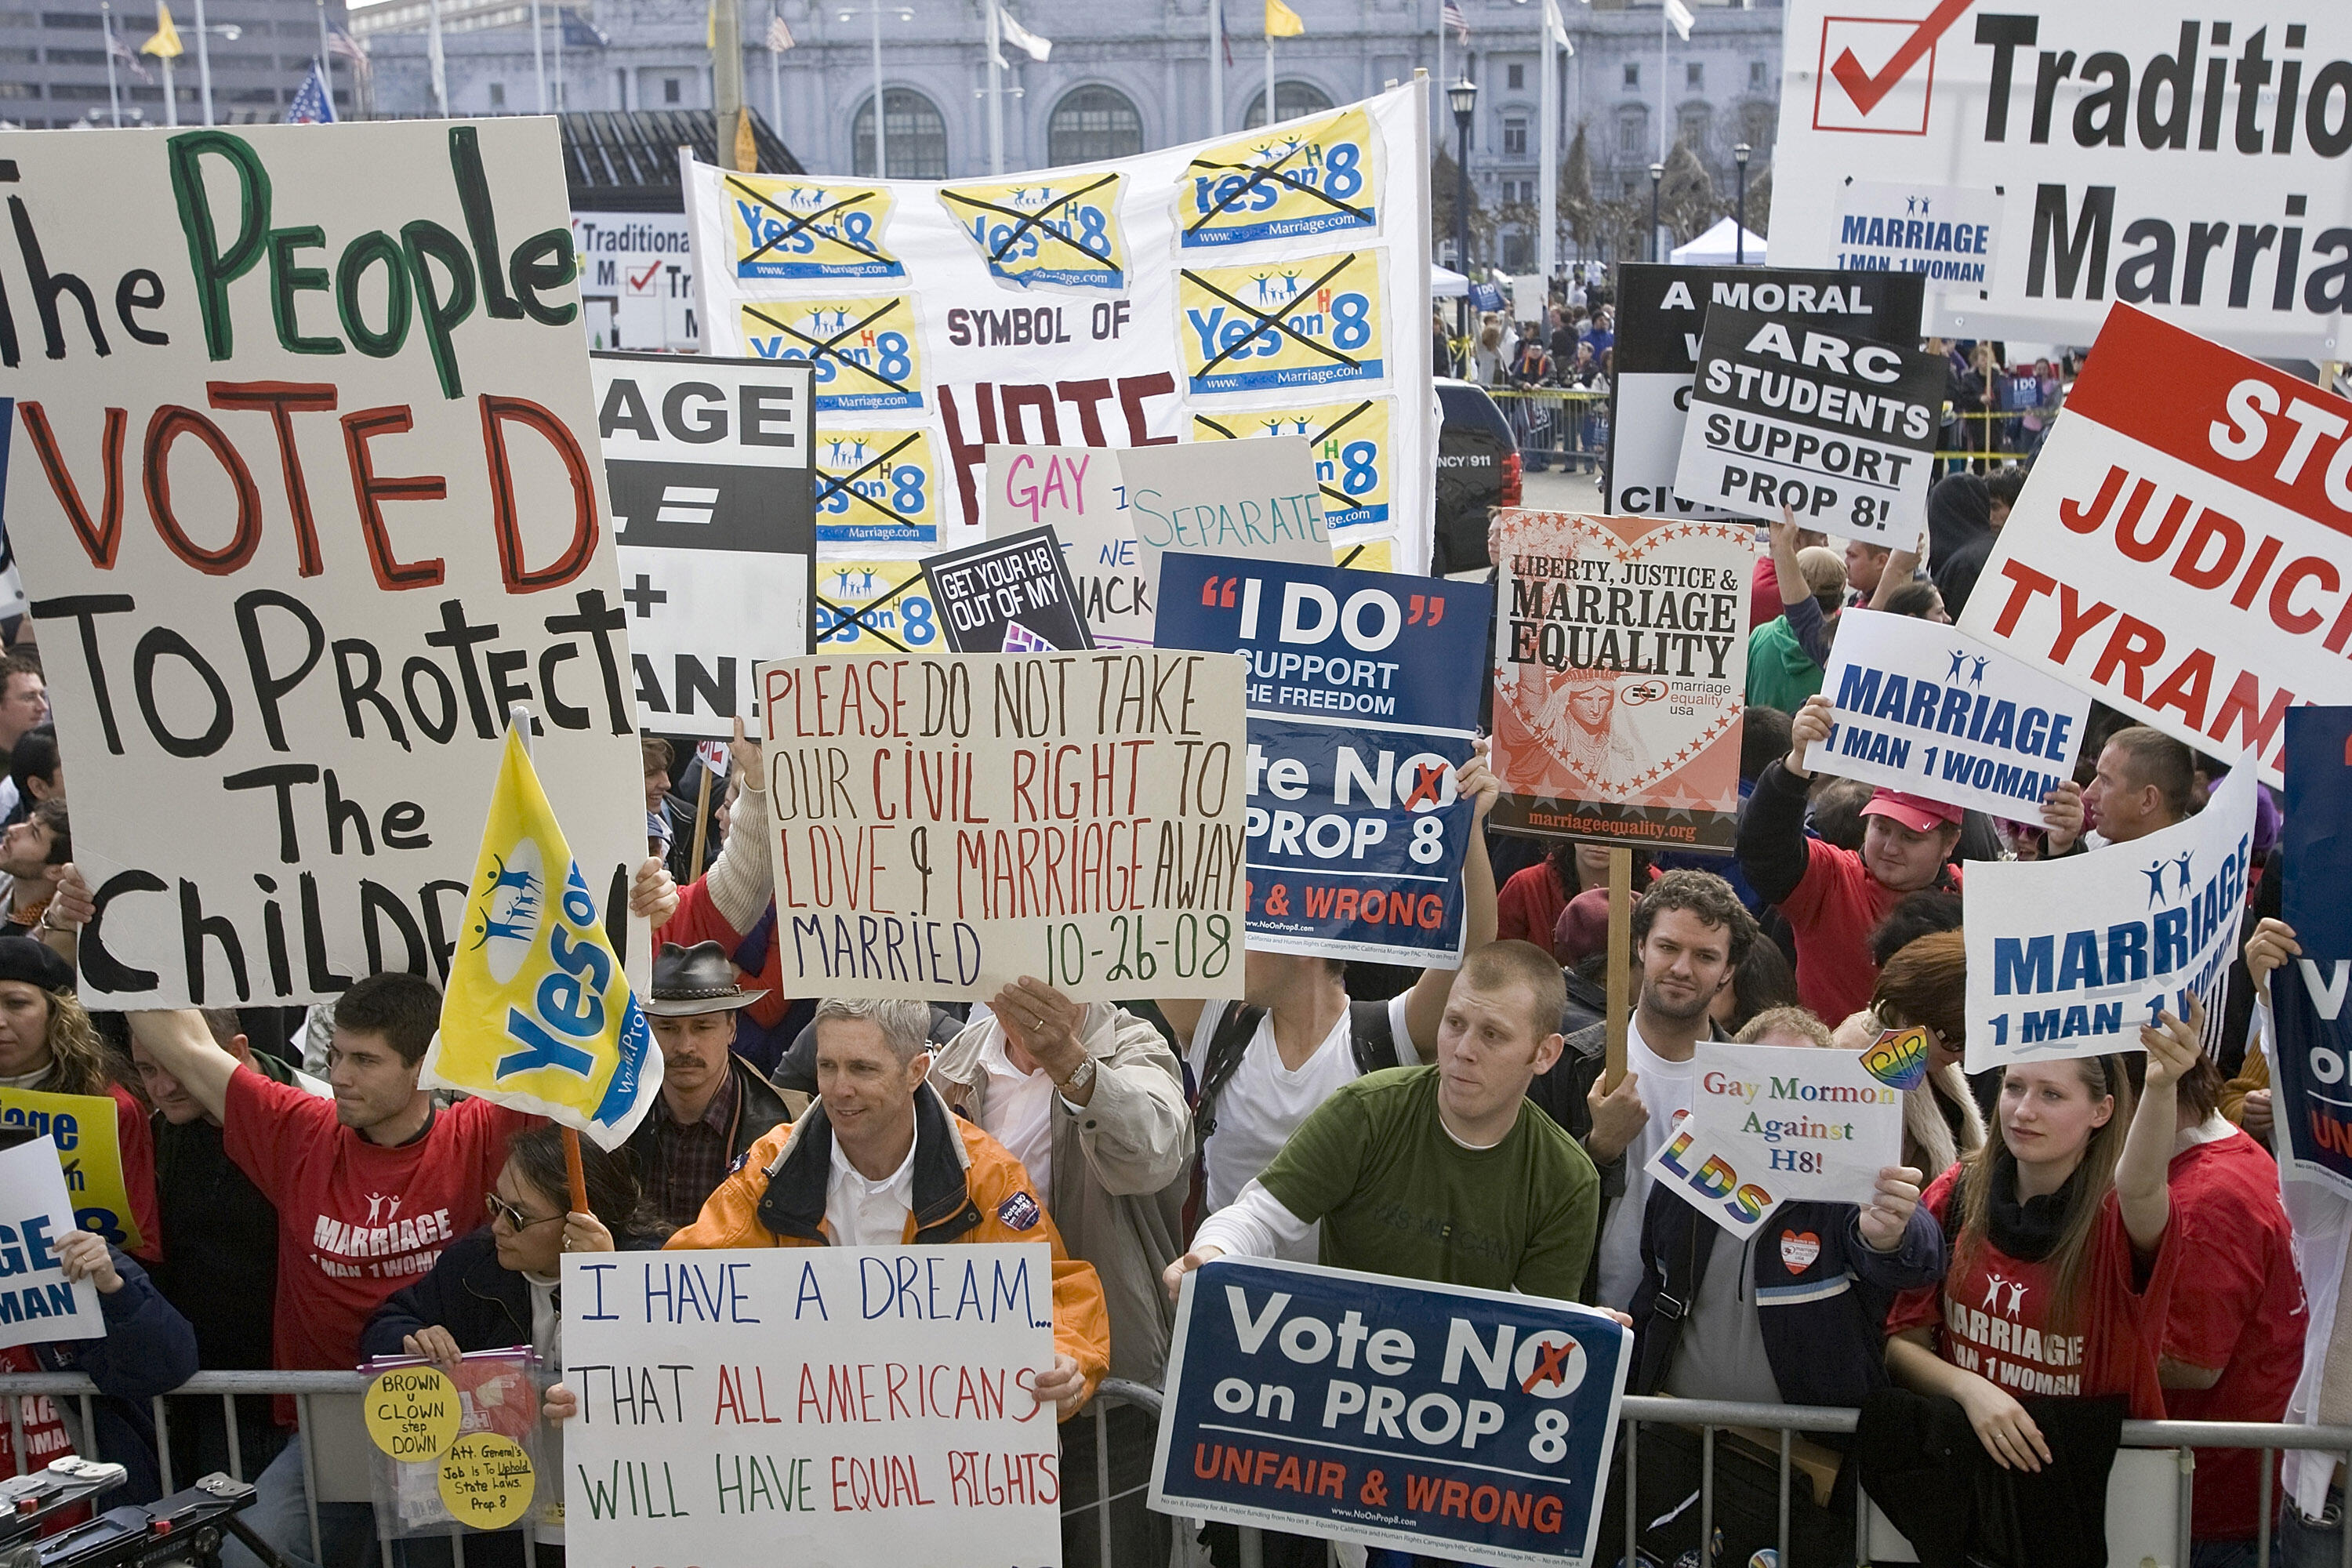 calif-proposition-8-protest-getty-images